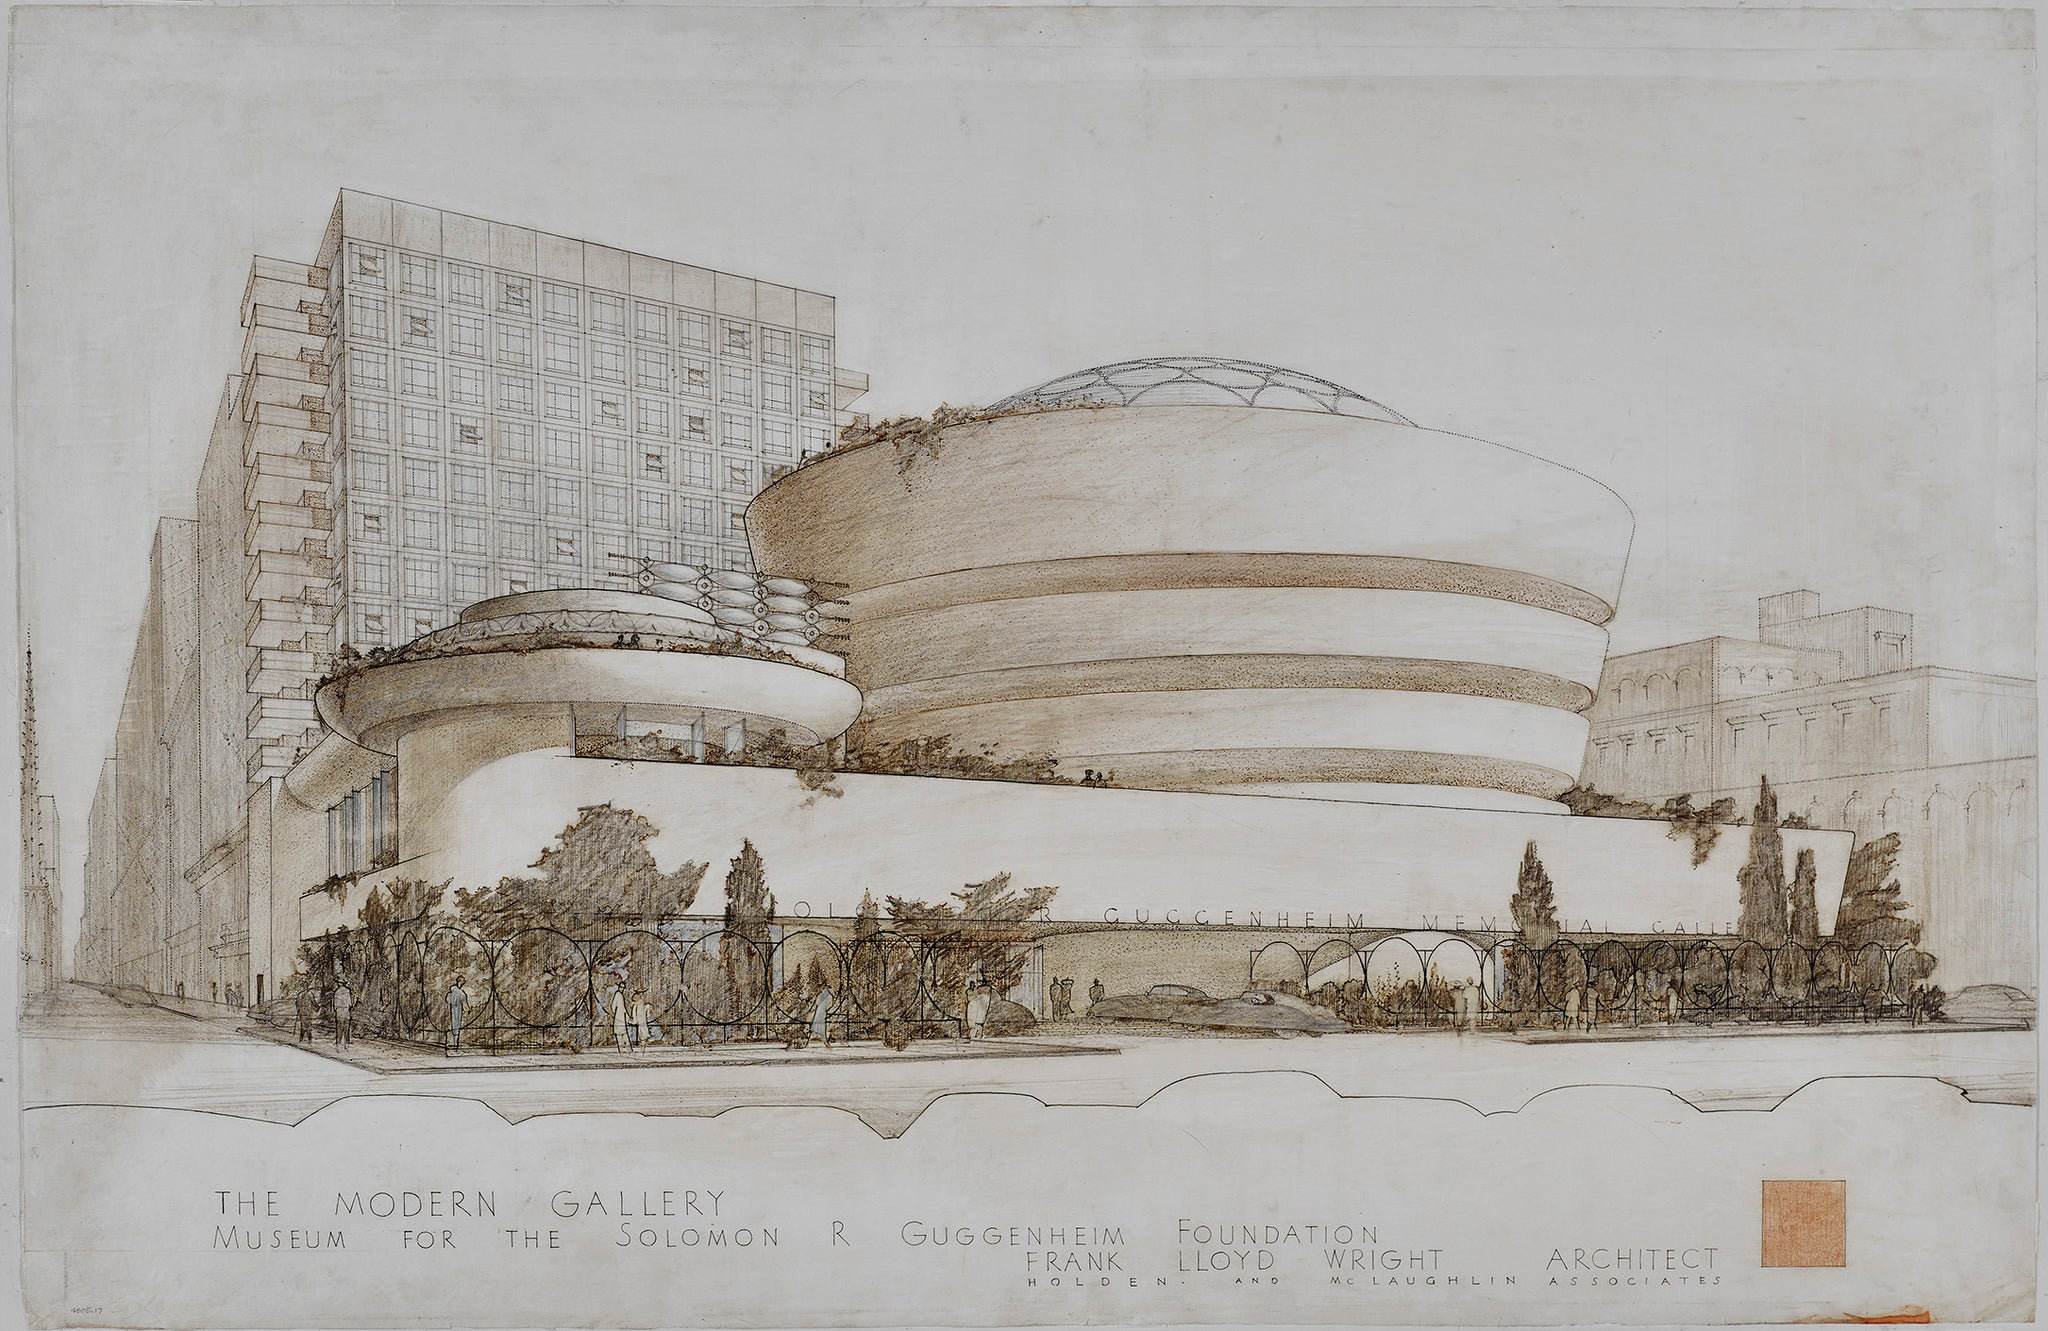 Sketch of the Guggenheim museum by Frank Lloyd Wright